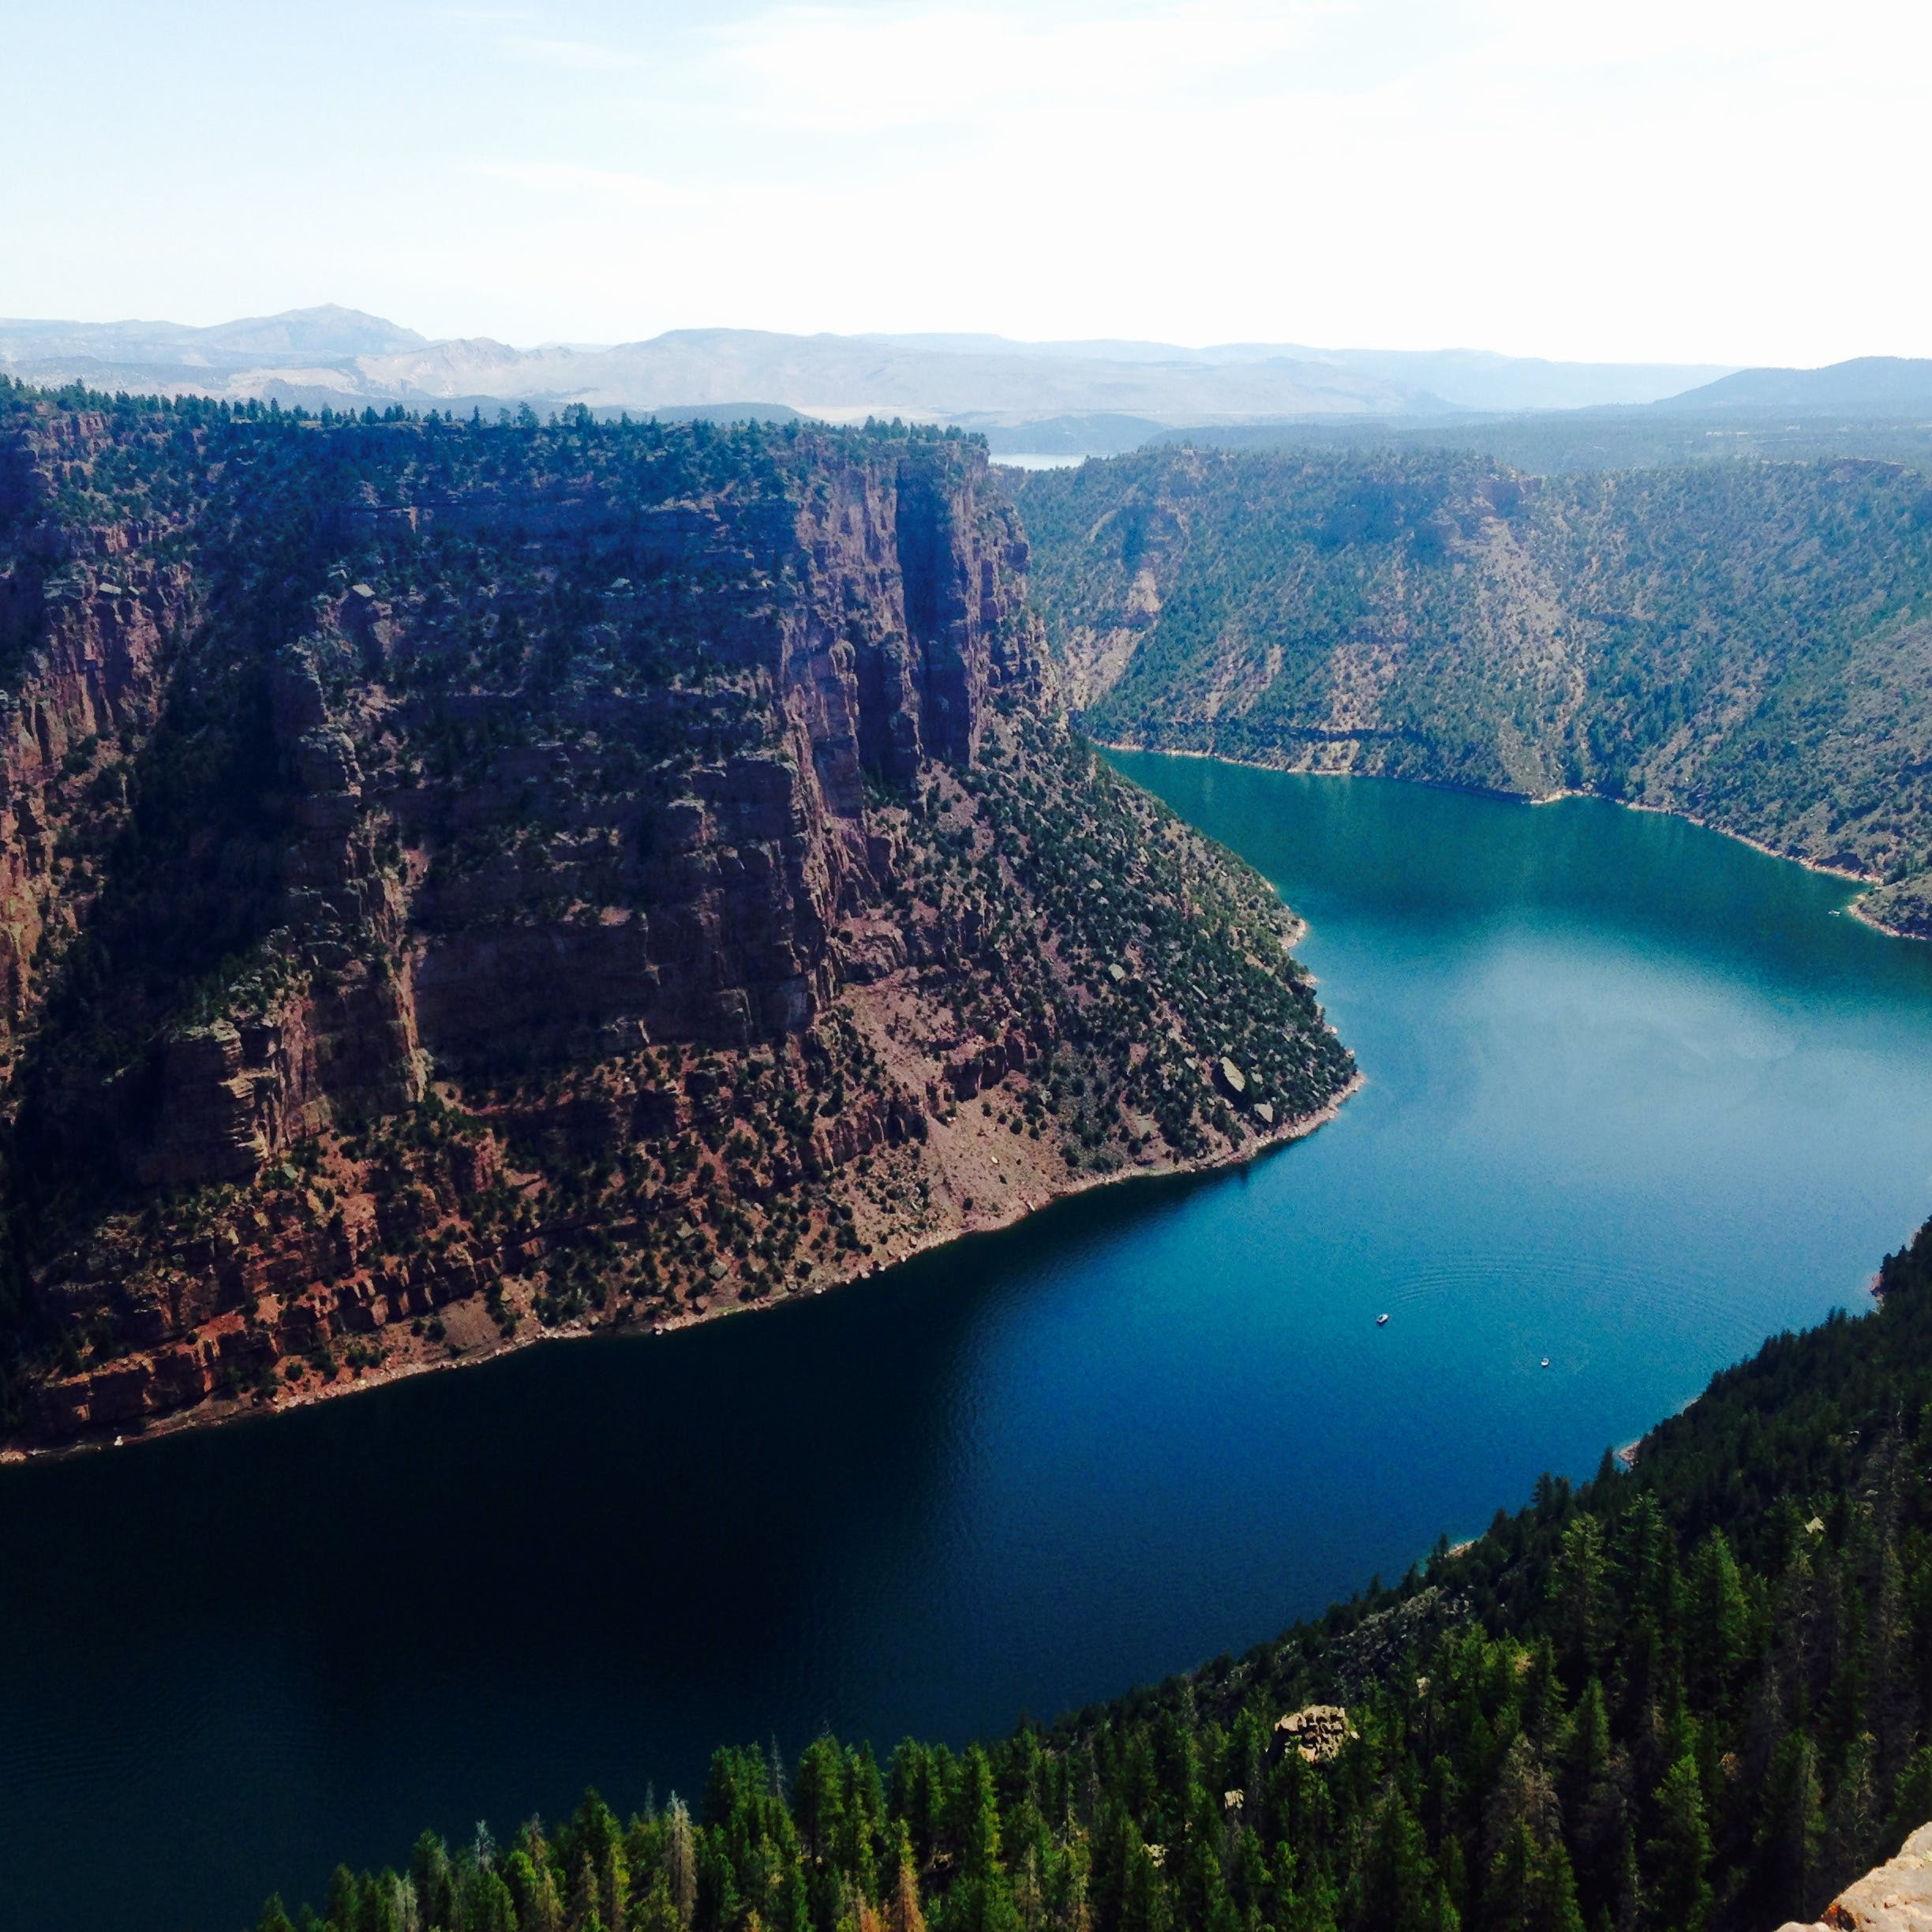 Boating Information for Flaming Gorge NRA, Wyoming